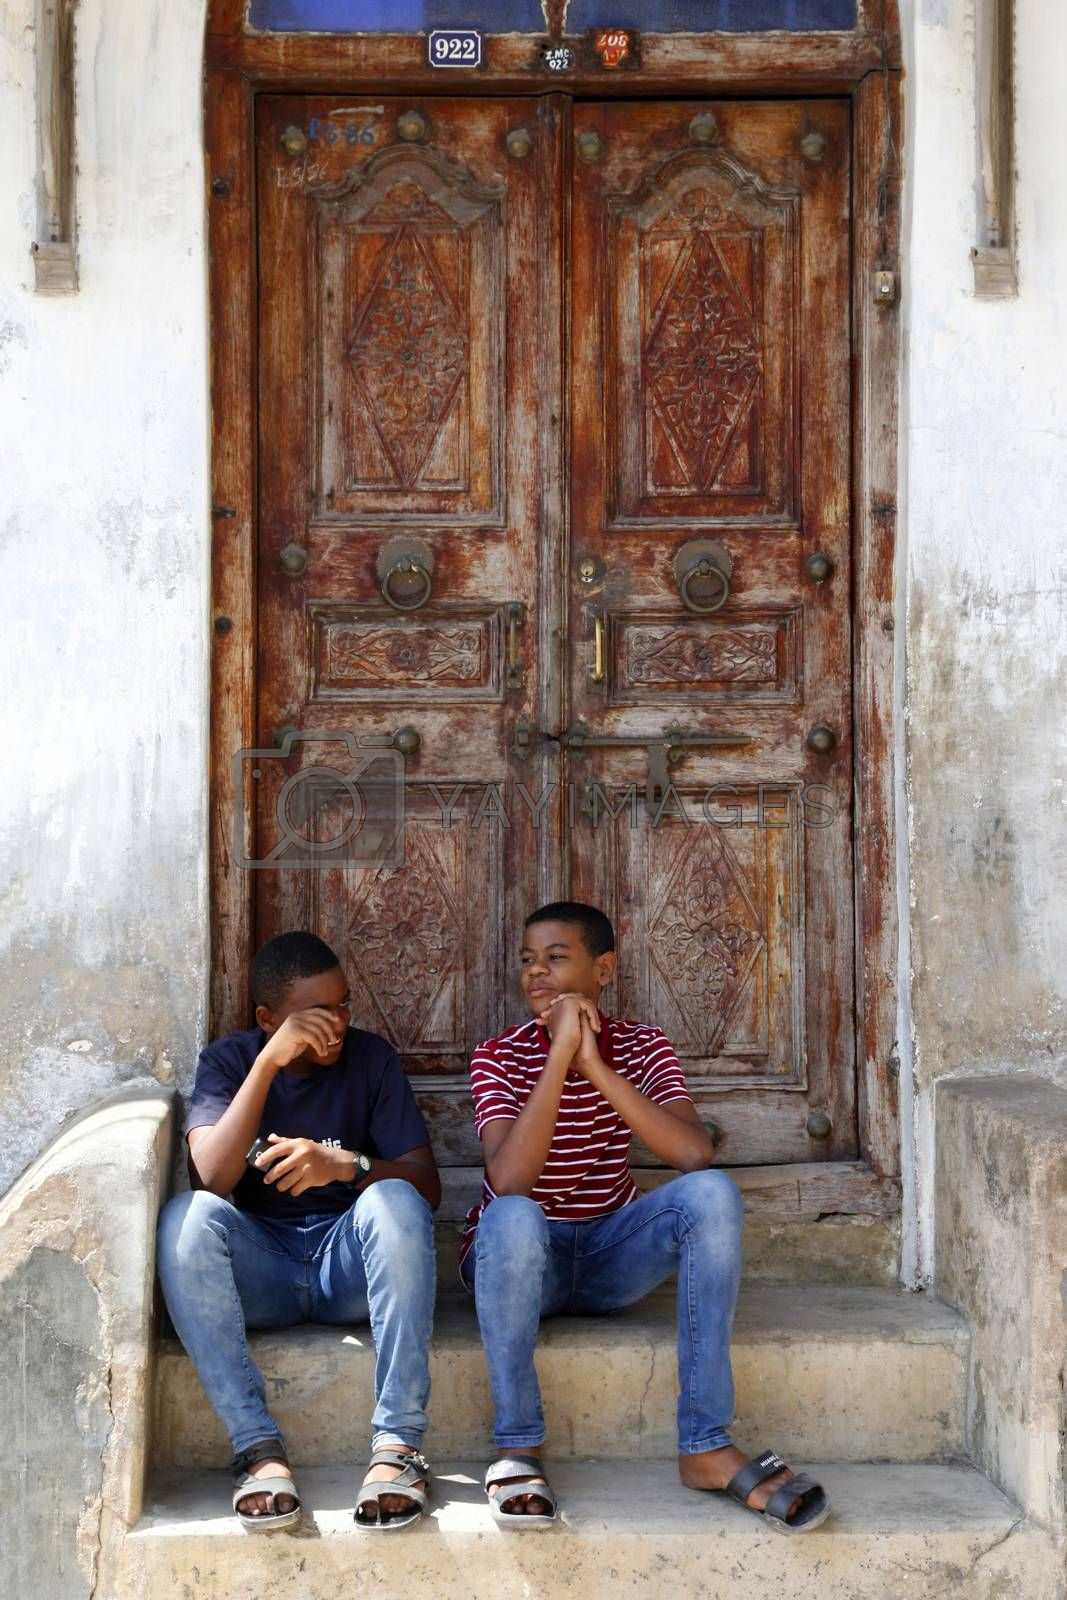 Stone Town, Tanzania - December 30, 2015: Two young people sitting on the steps in the background a traditional wooden door in Stone Town, Zanzibar